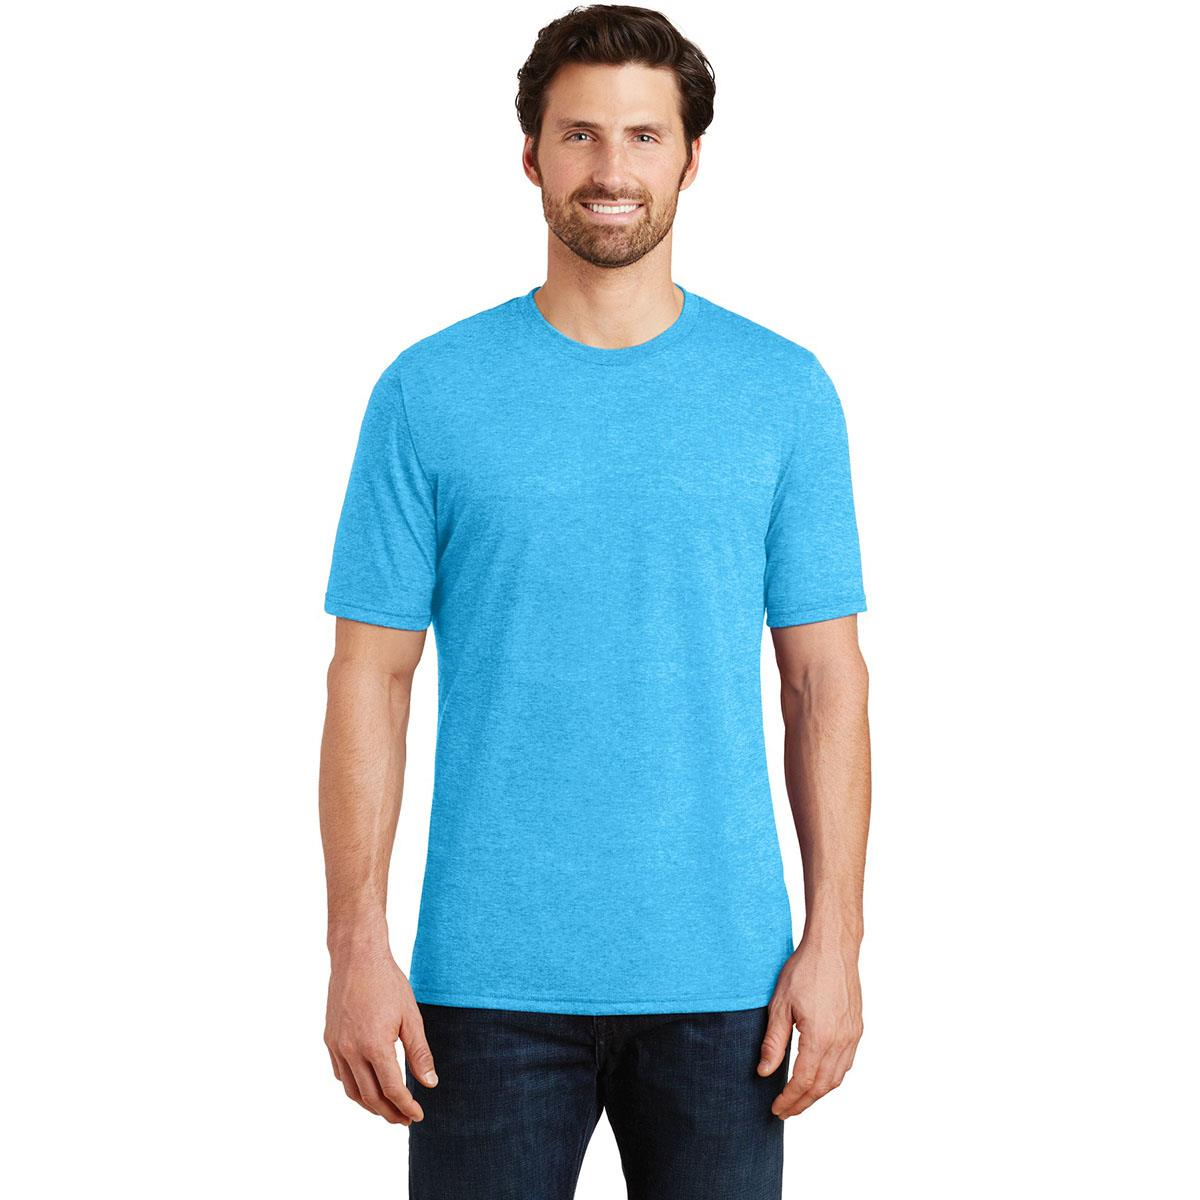 district made dm130 mens perfect tri crew tee turquoise